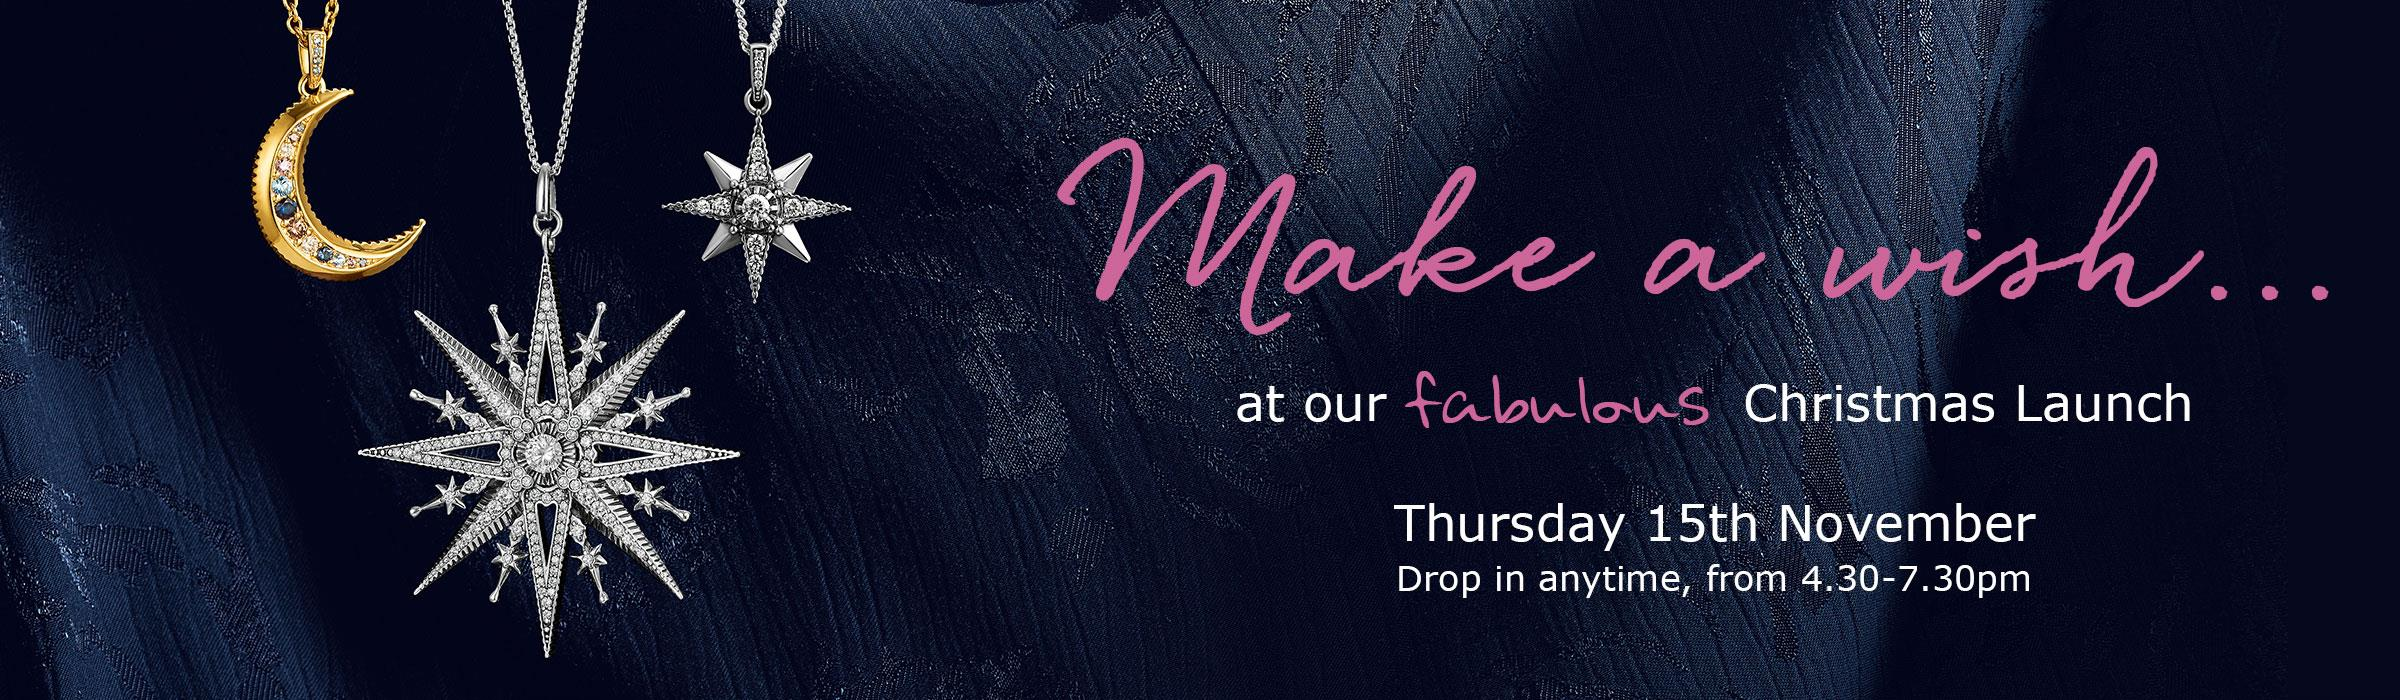 fabulous 'Make a Wish' Christmas Launch Event